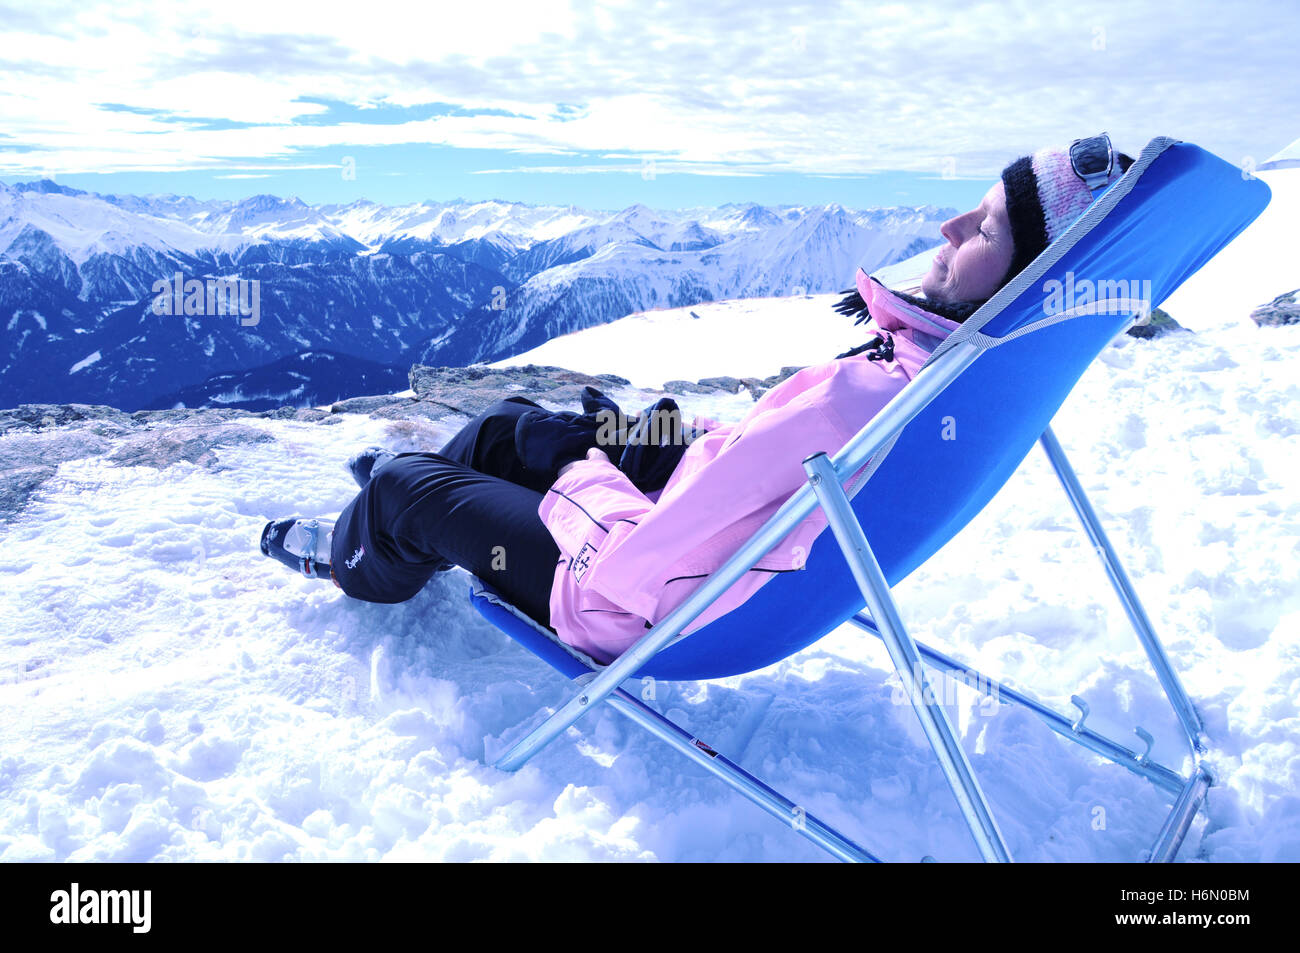 pause in the snow 2 - Stock Image